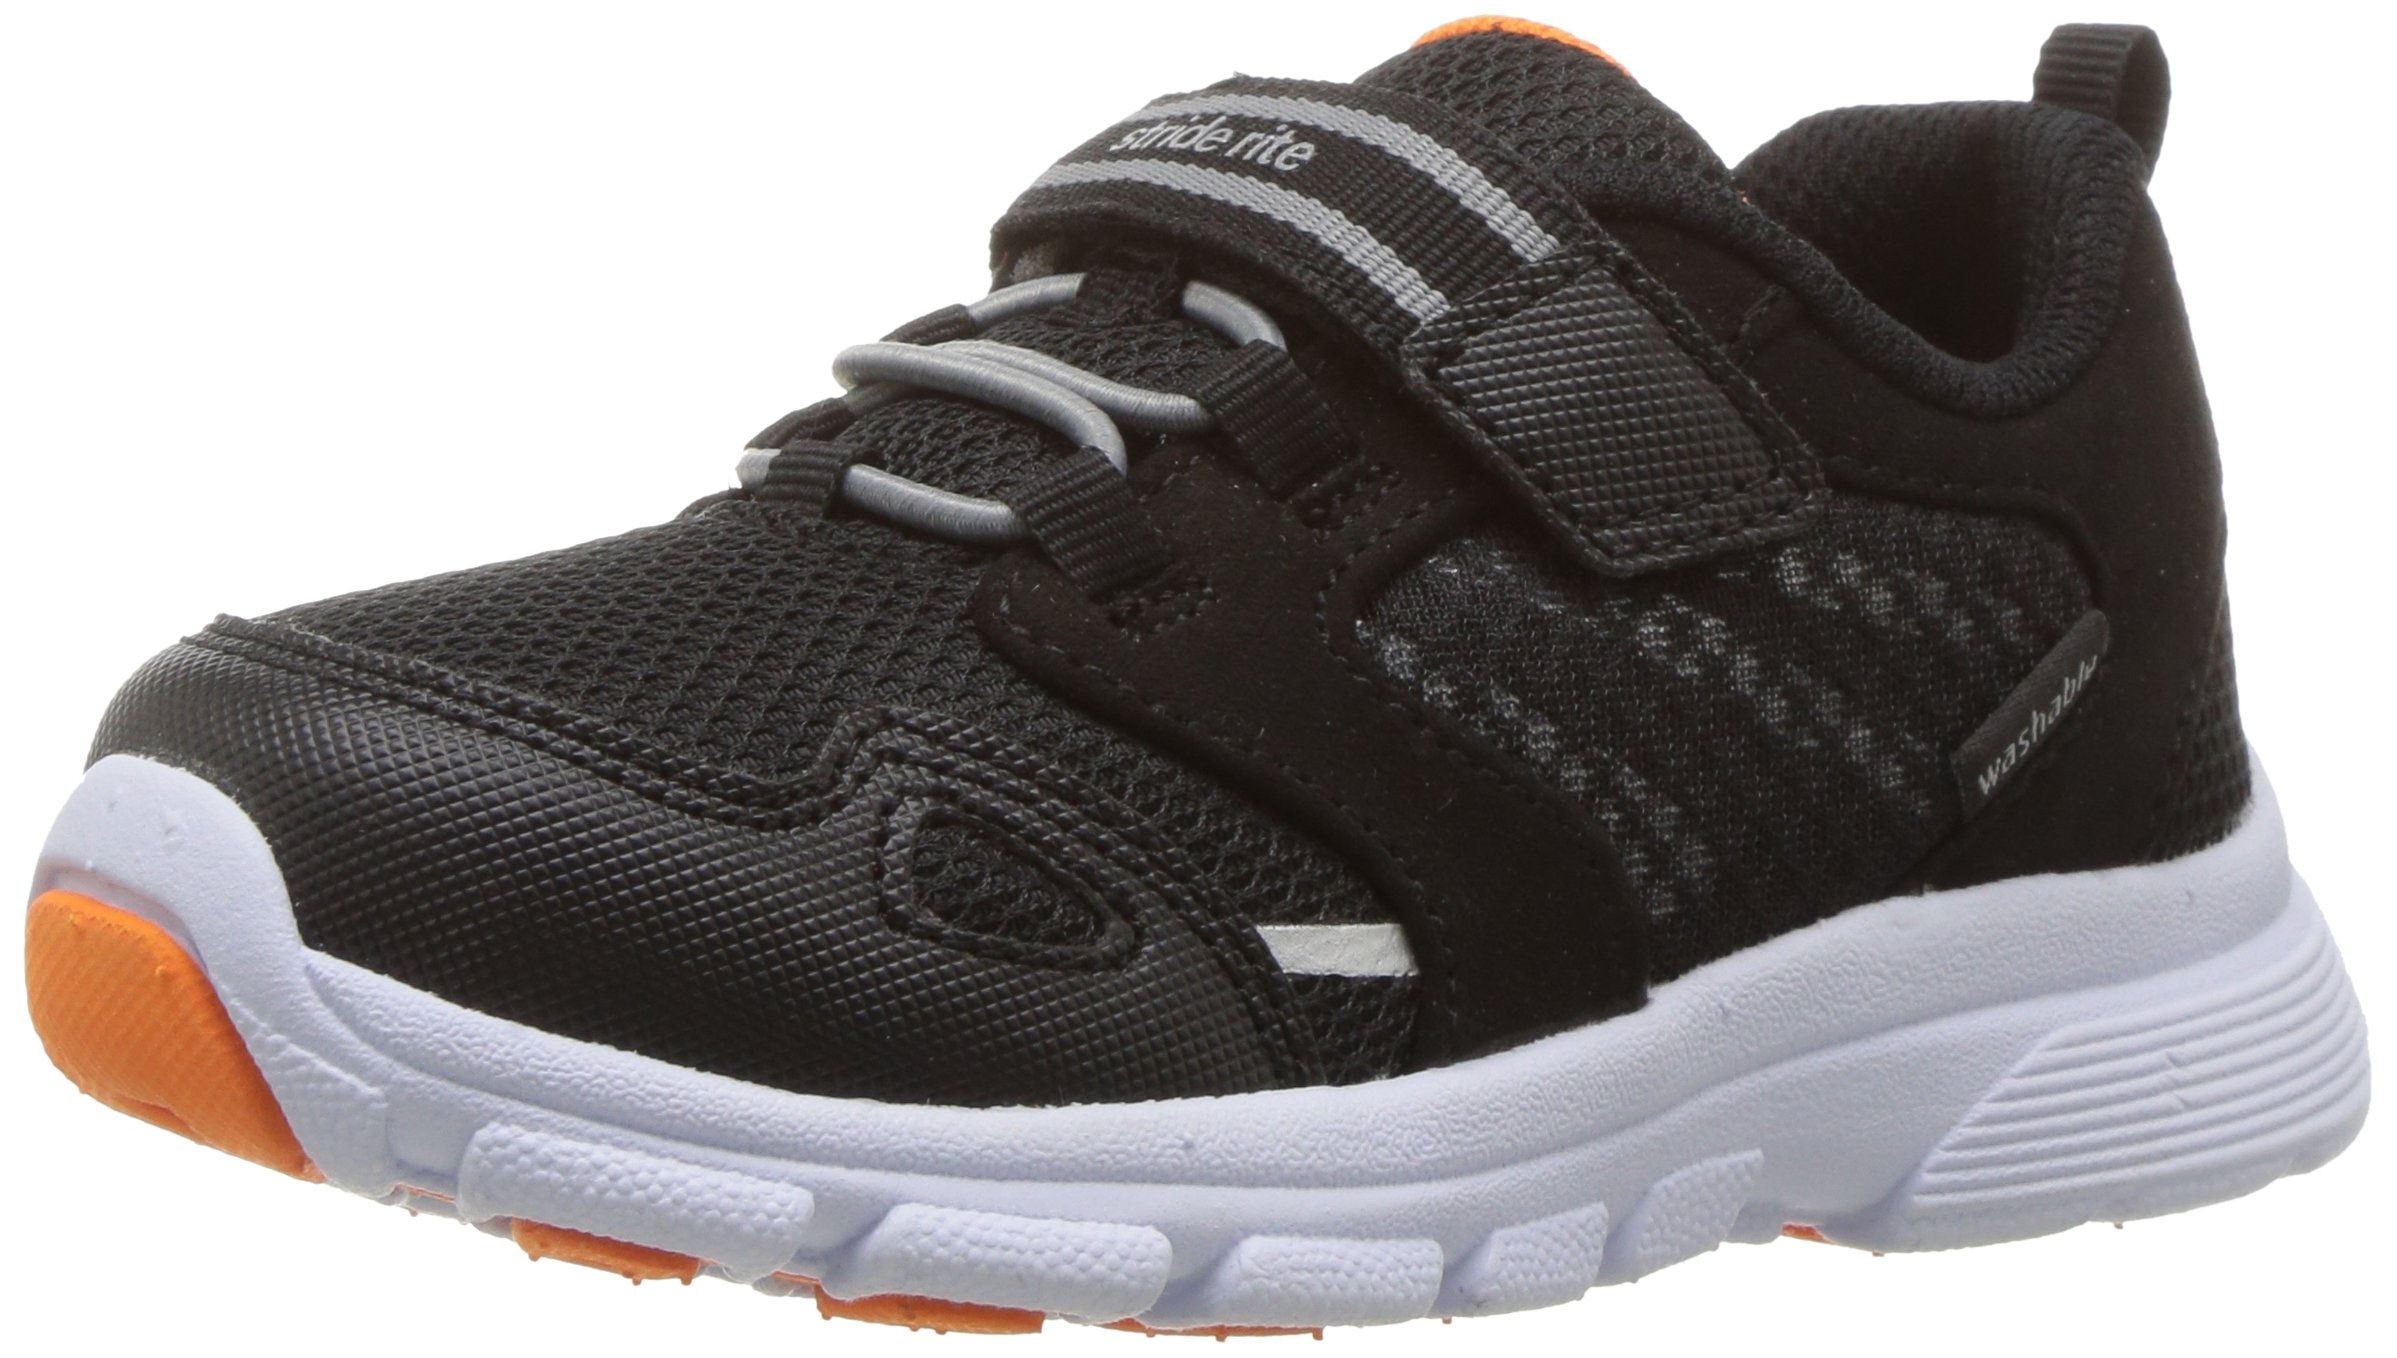 Stride Rite Boys' Made 2 Play Taylor Sneaker, Black/White 7 M US Toddler